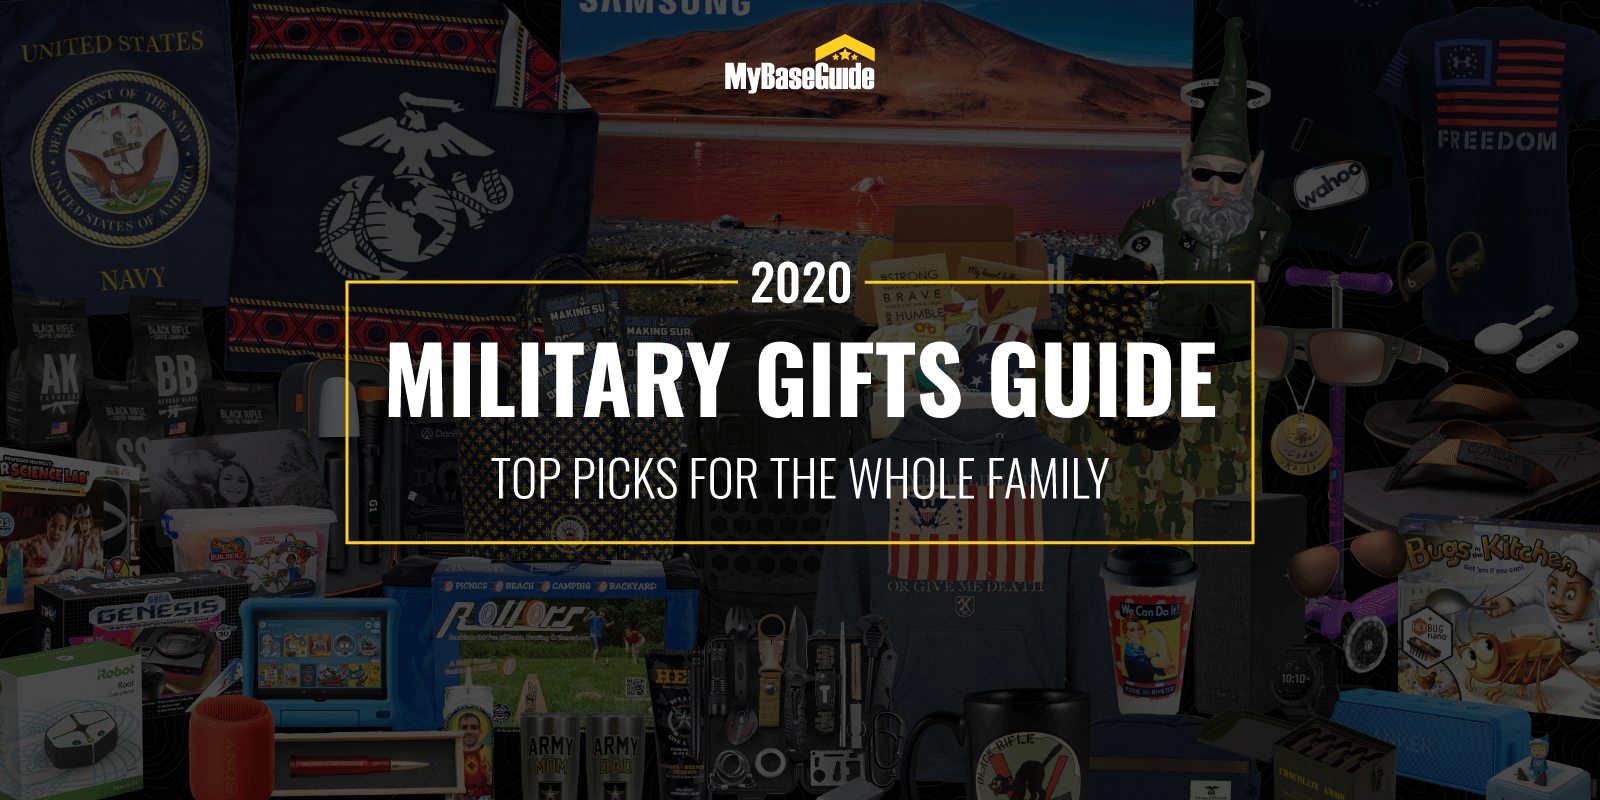 Military Gifts Guide 2020: 56 Top Picks for the Whole Family